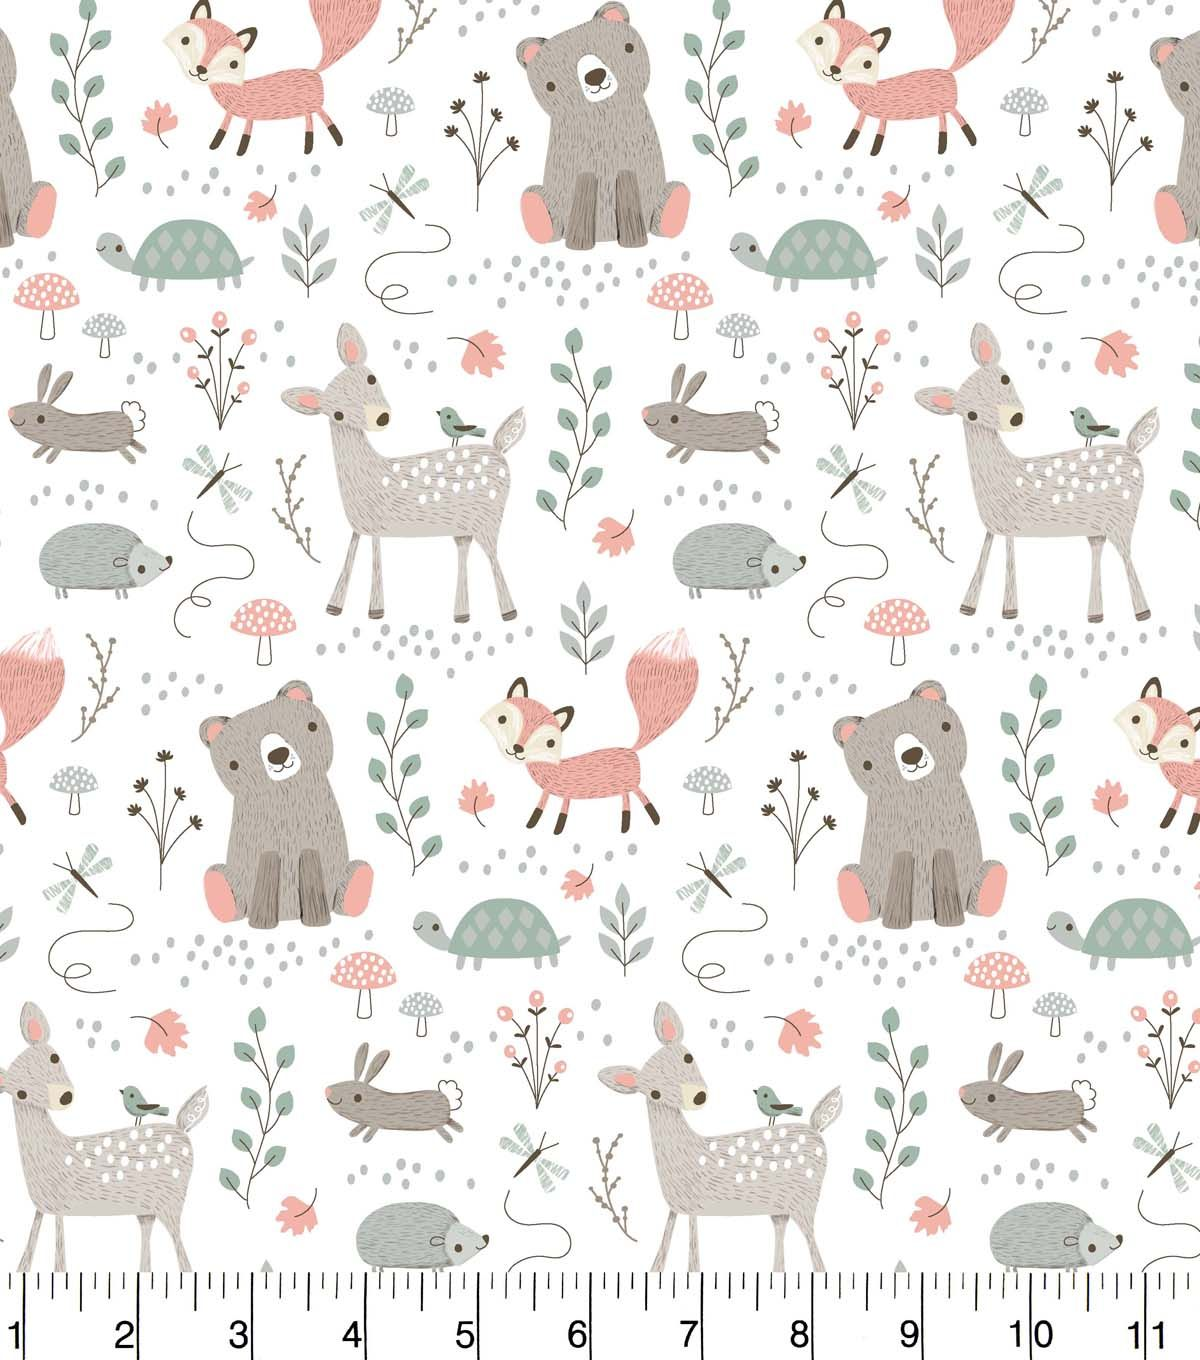 Nursery Flannel Fabric Woodland Animals